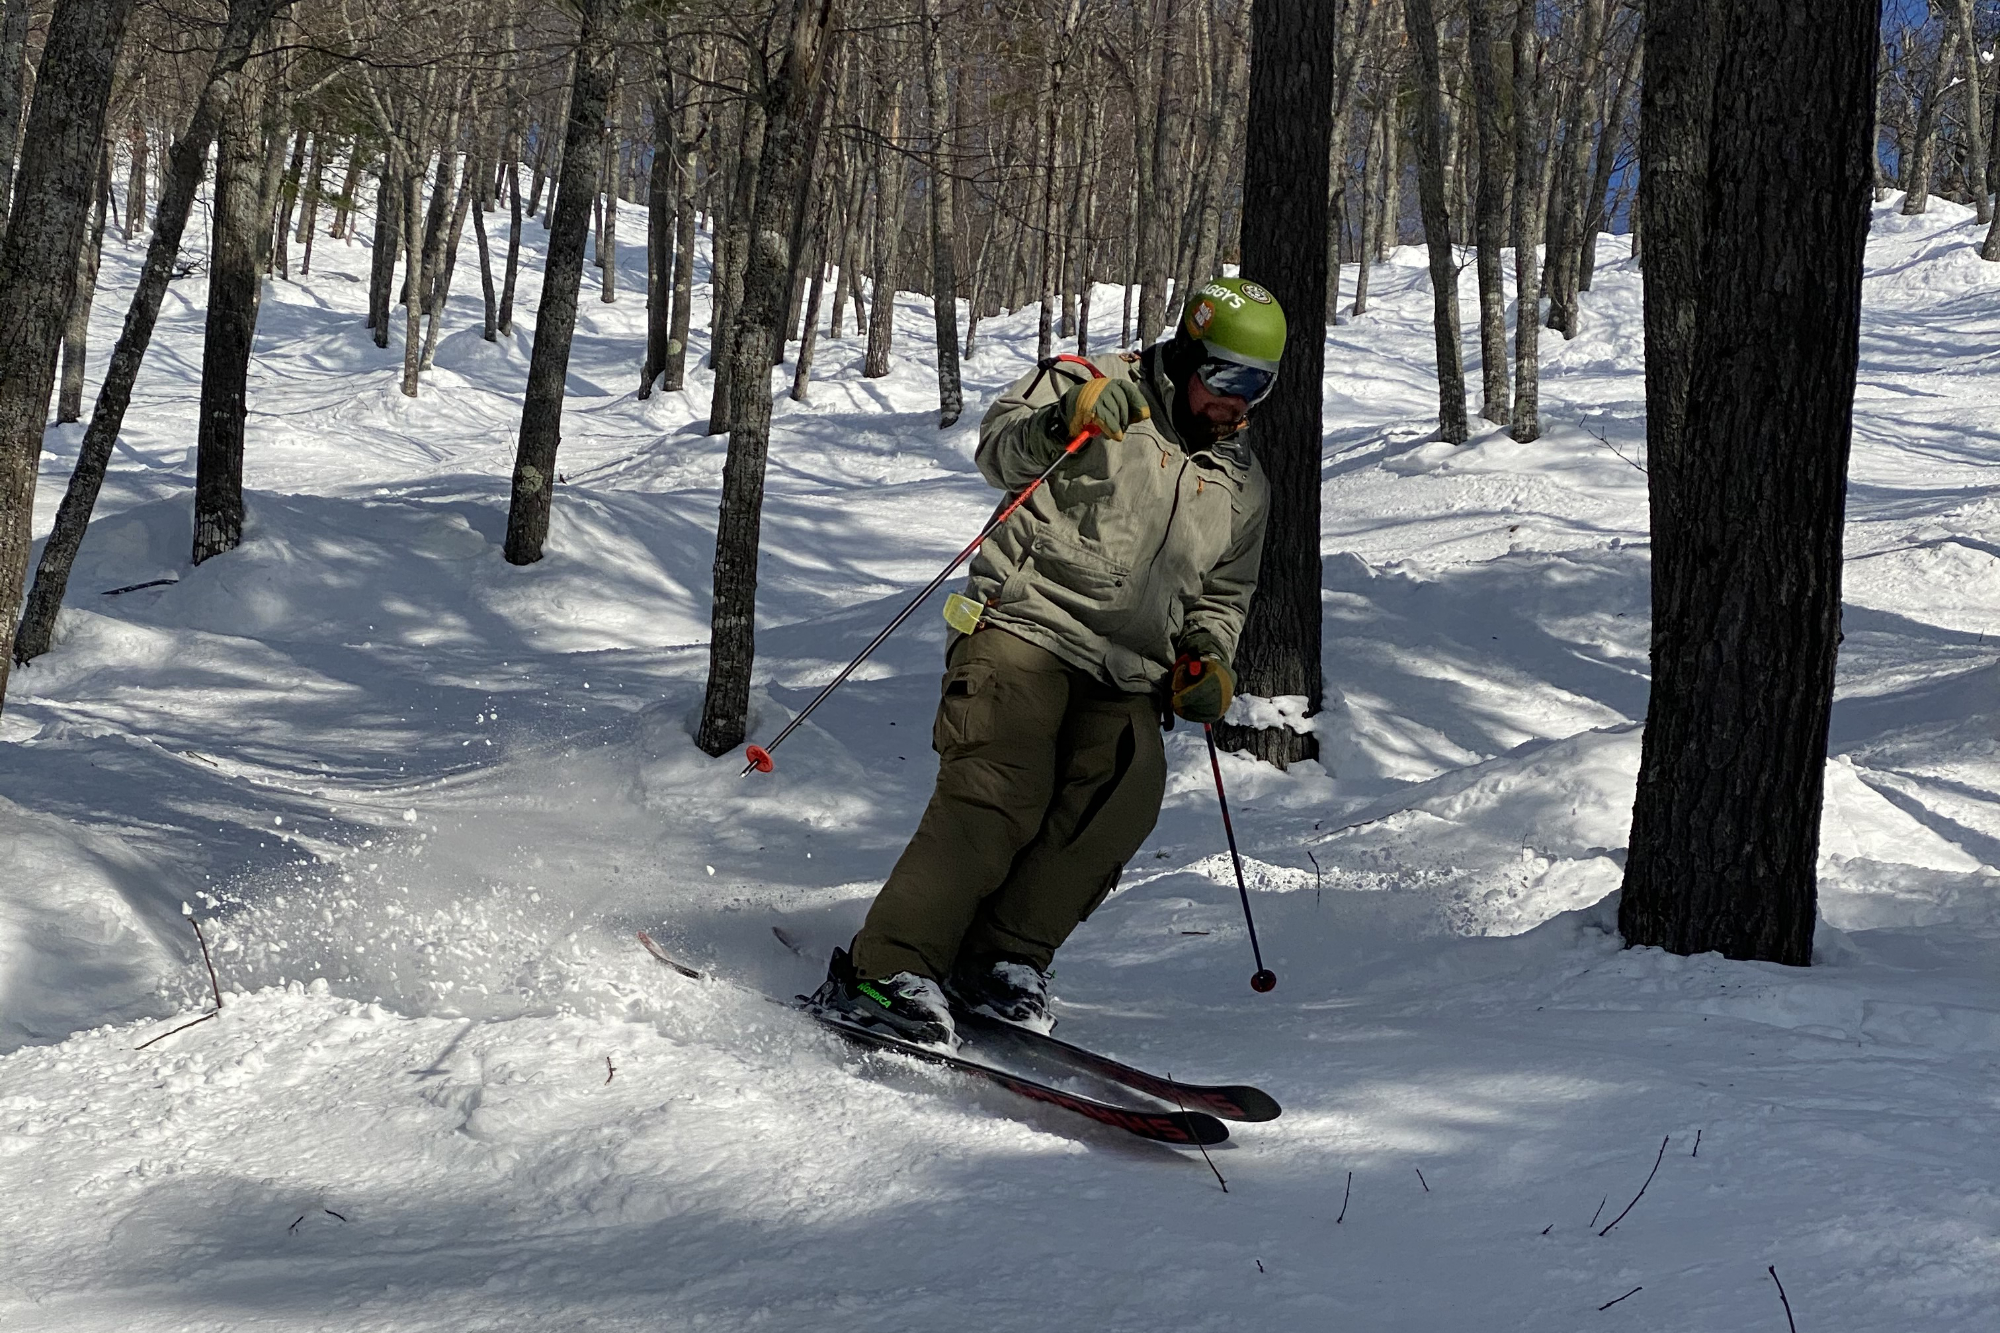 skiing trees at Mount Bohemia